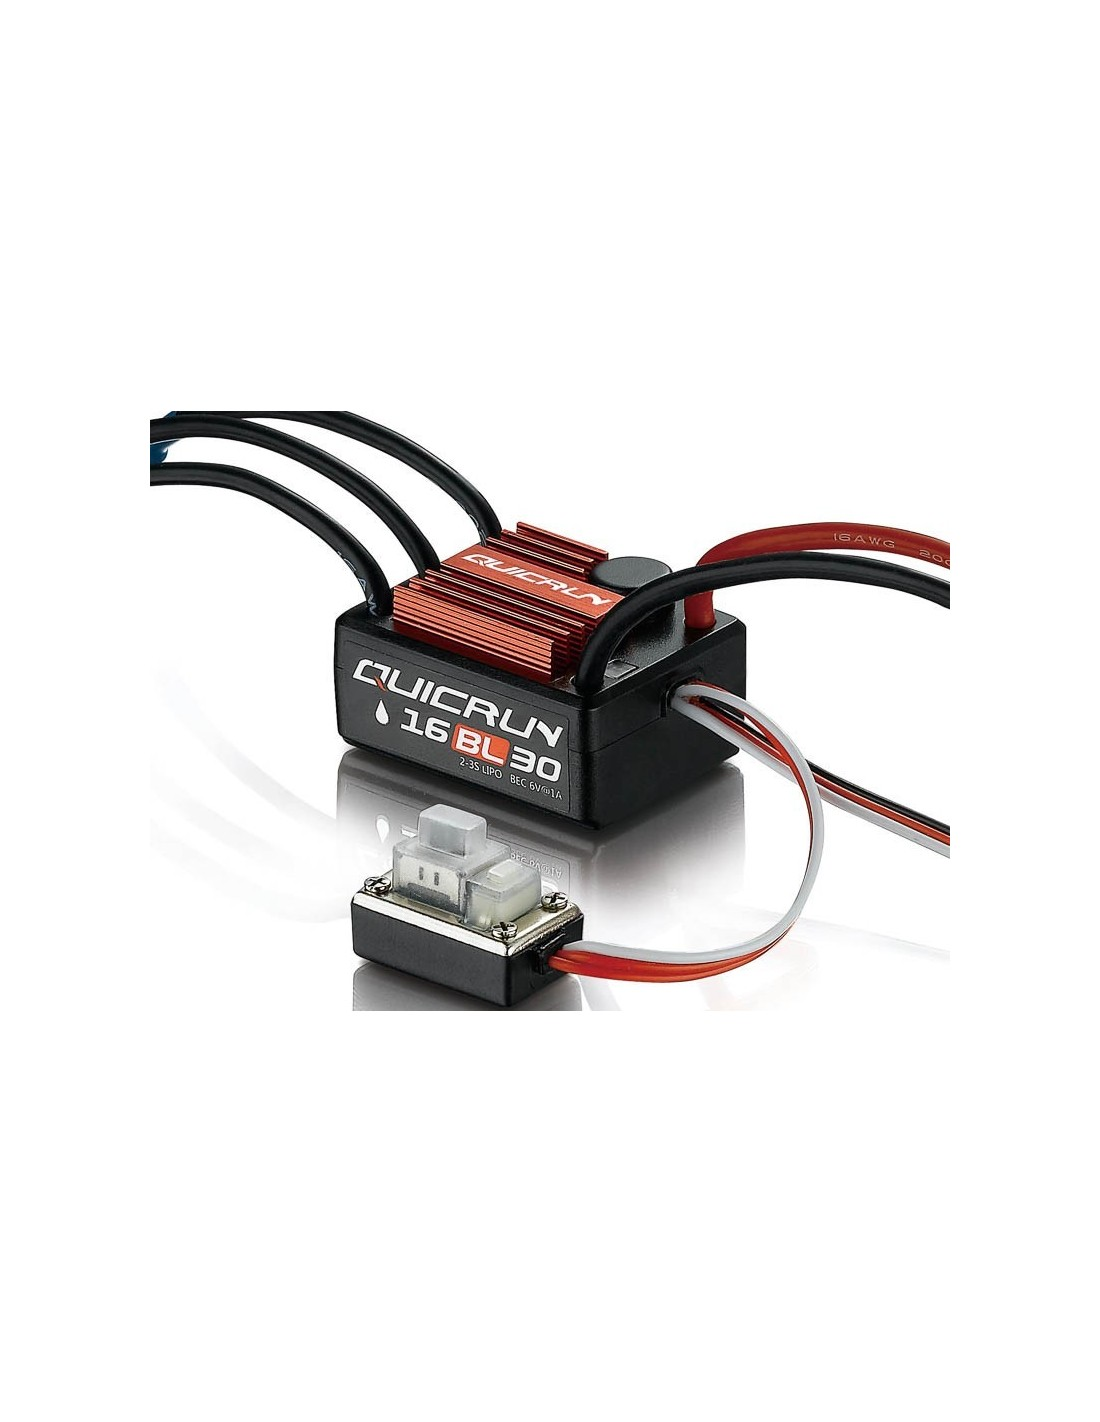 Hobbywing Quicrun Wp16bl30 Brushless Esc 30a For 116 Wiring